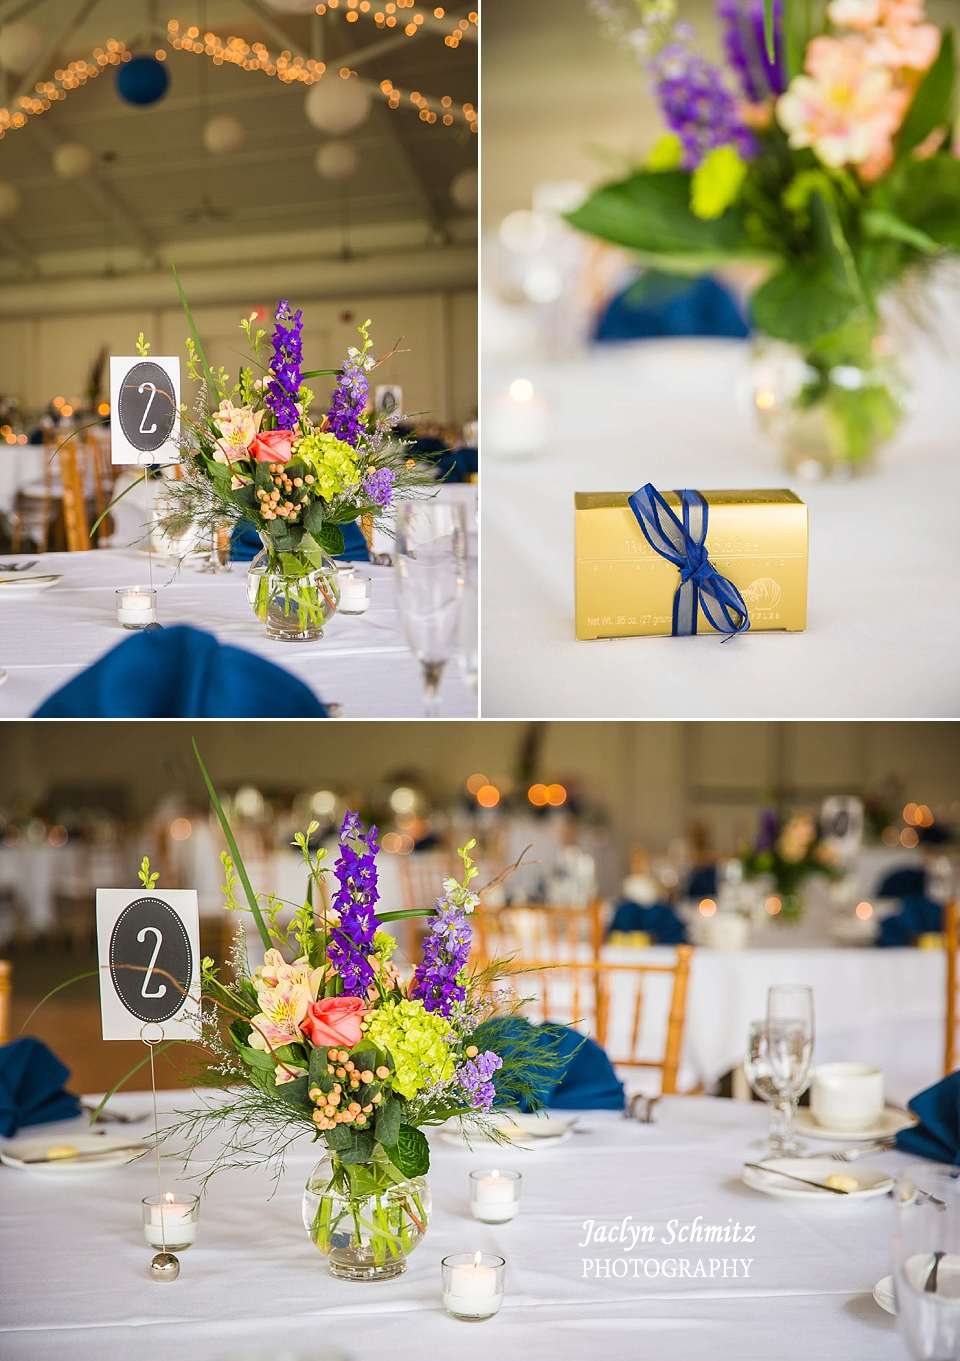 purple and peach flower wedding centerpiece with blue accents hotel wedding vt